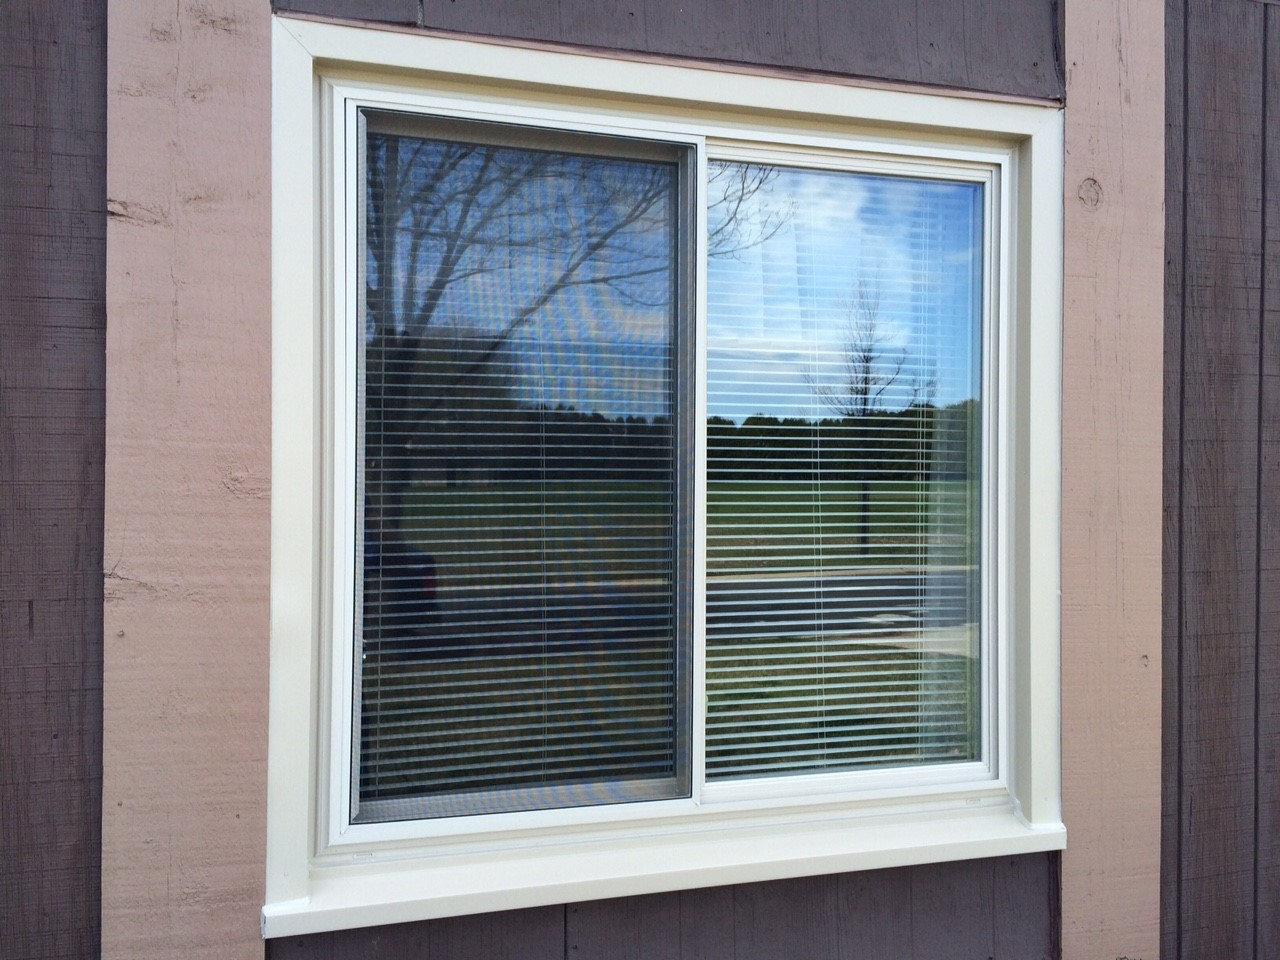 Replacement window gallery milwaukee window company for Home window replacement